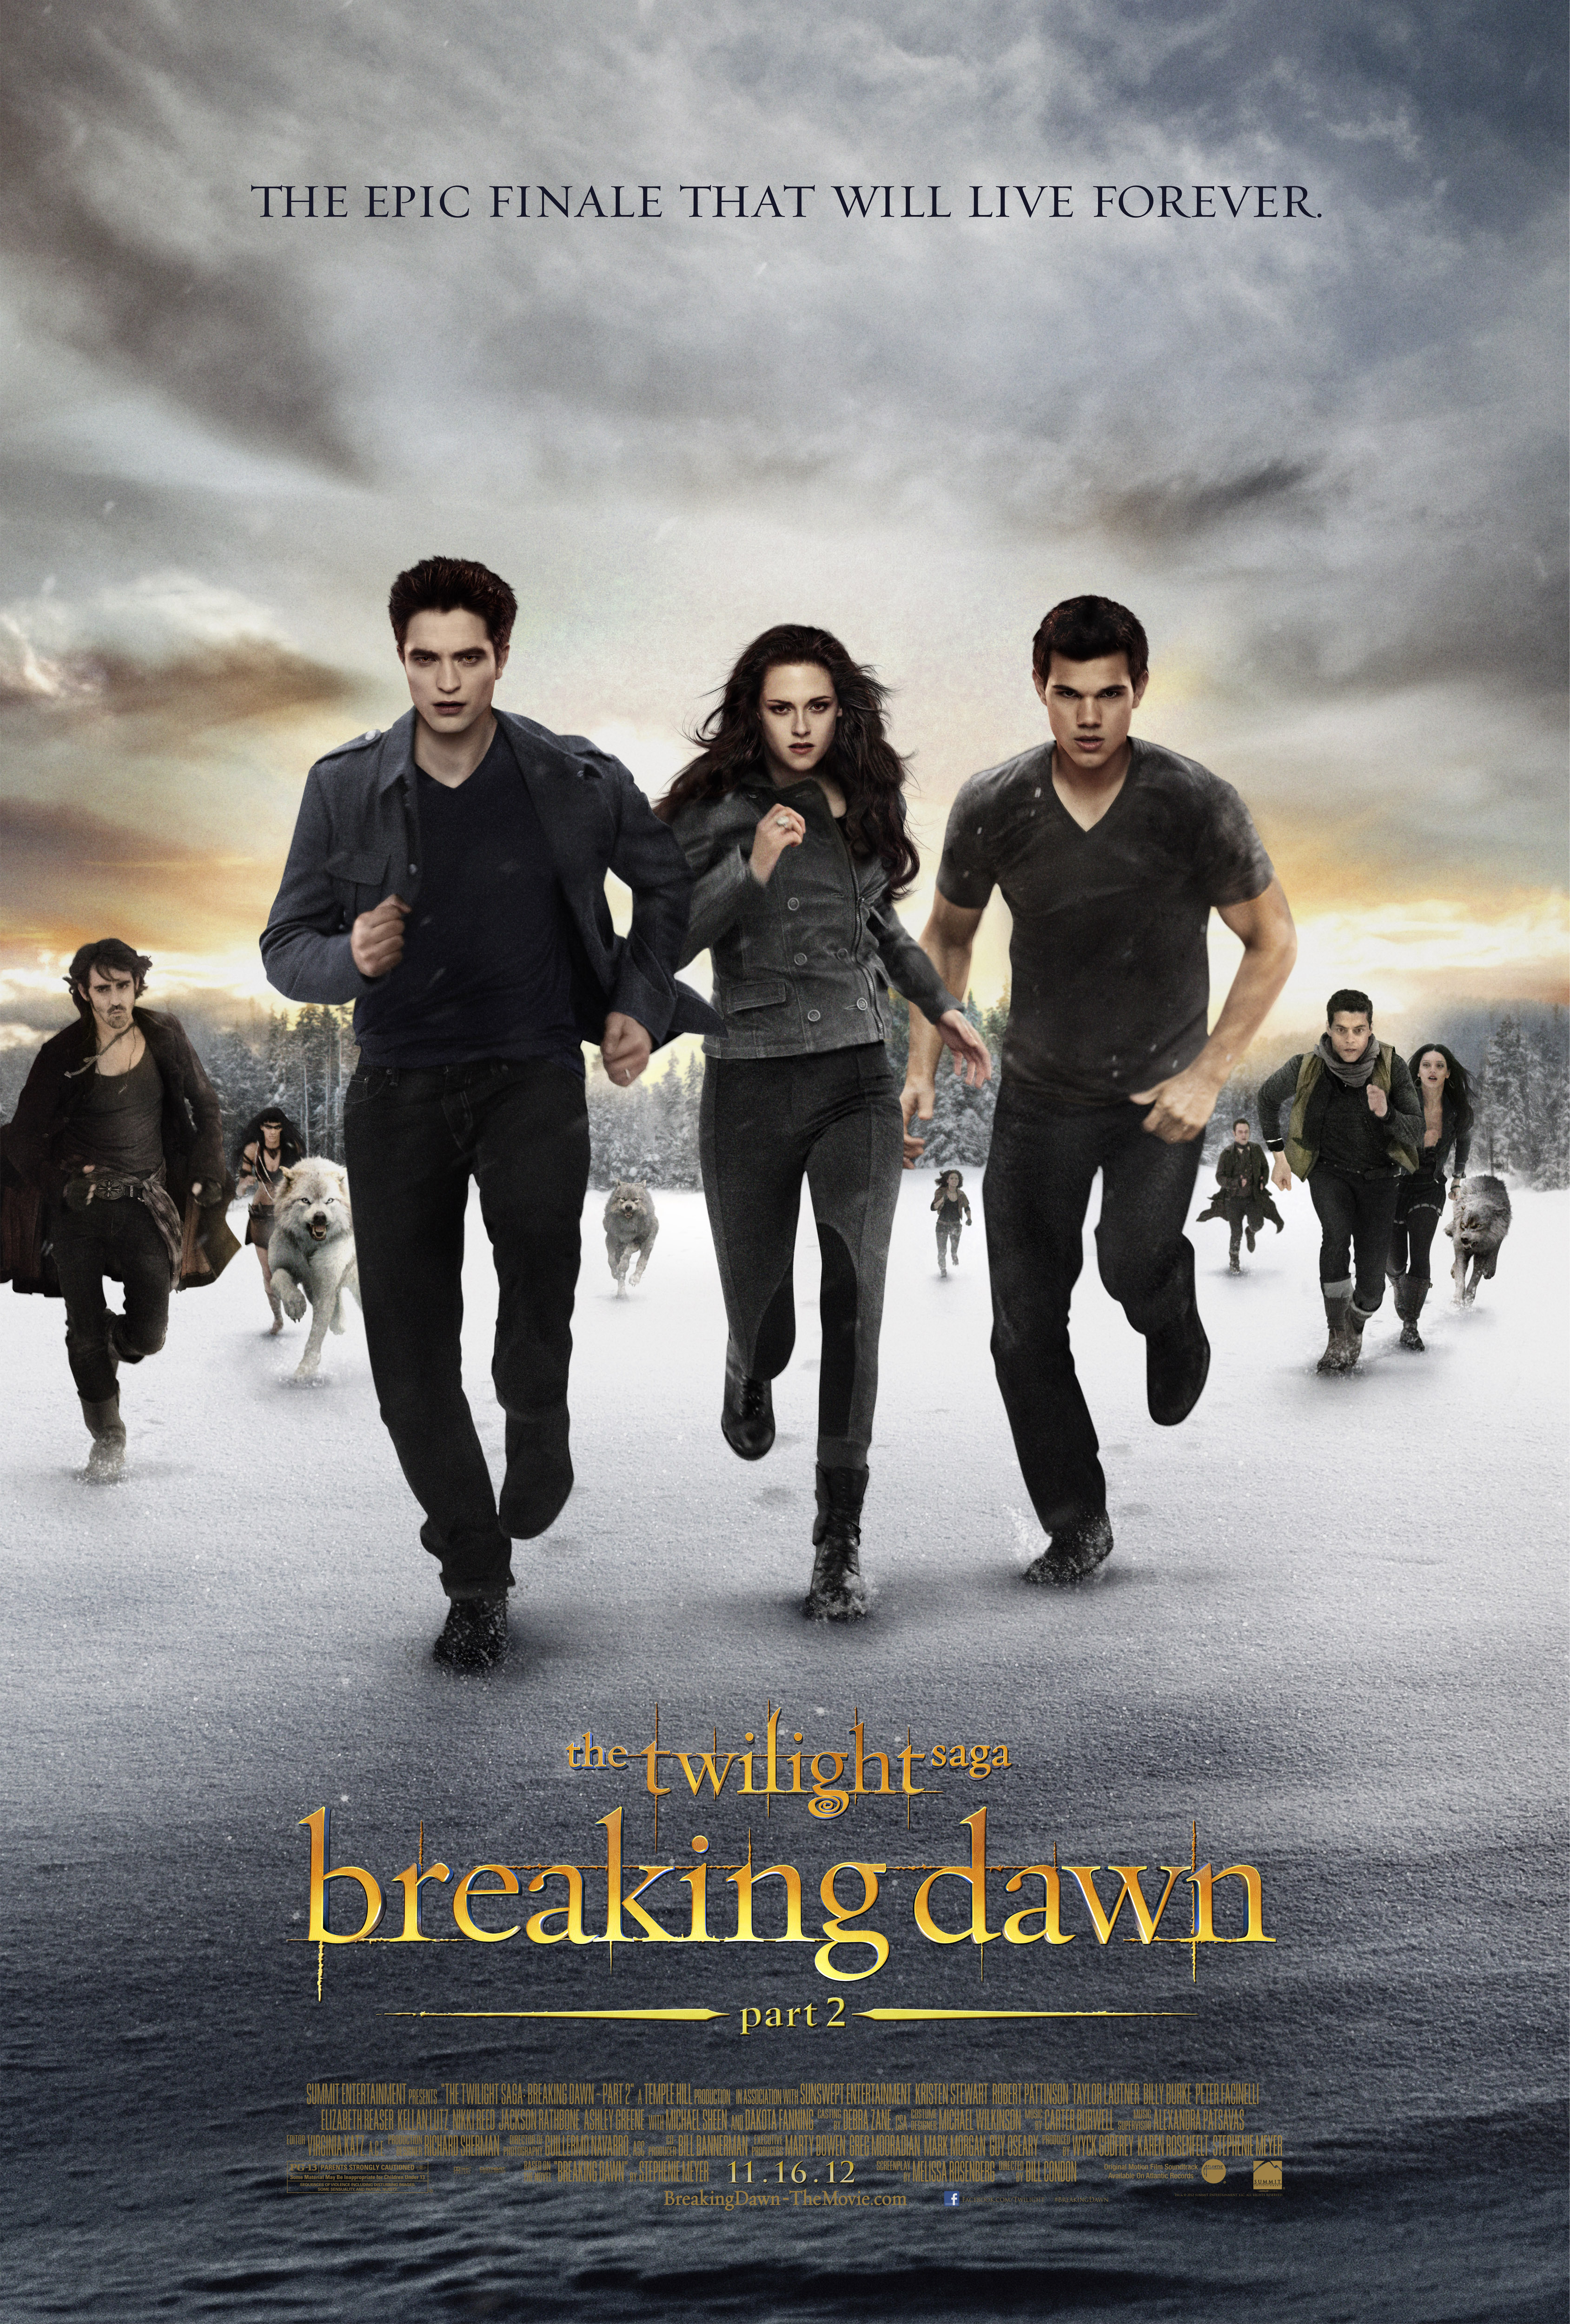 http://collider.com/wp-content/uploads/twilight-breaking-dawn-part-2-poster.jpg